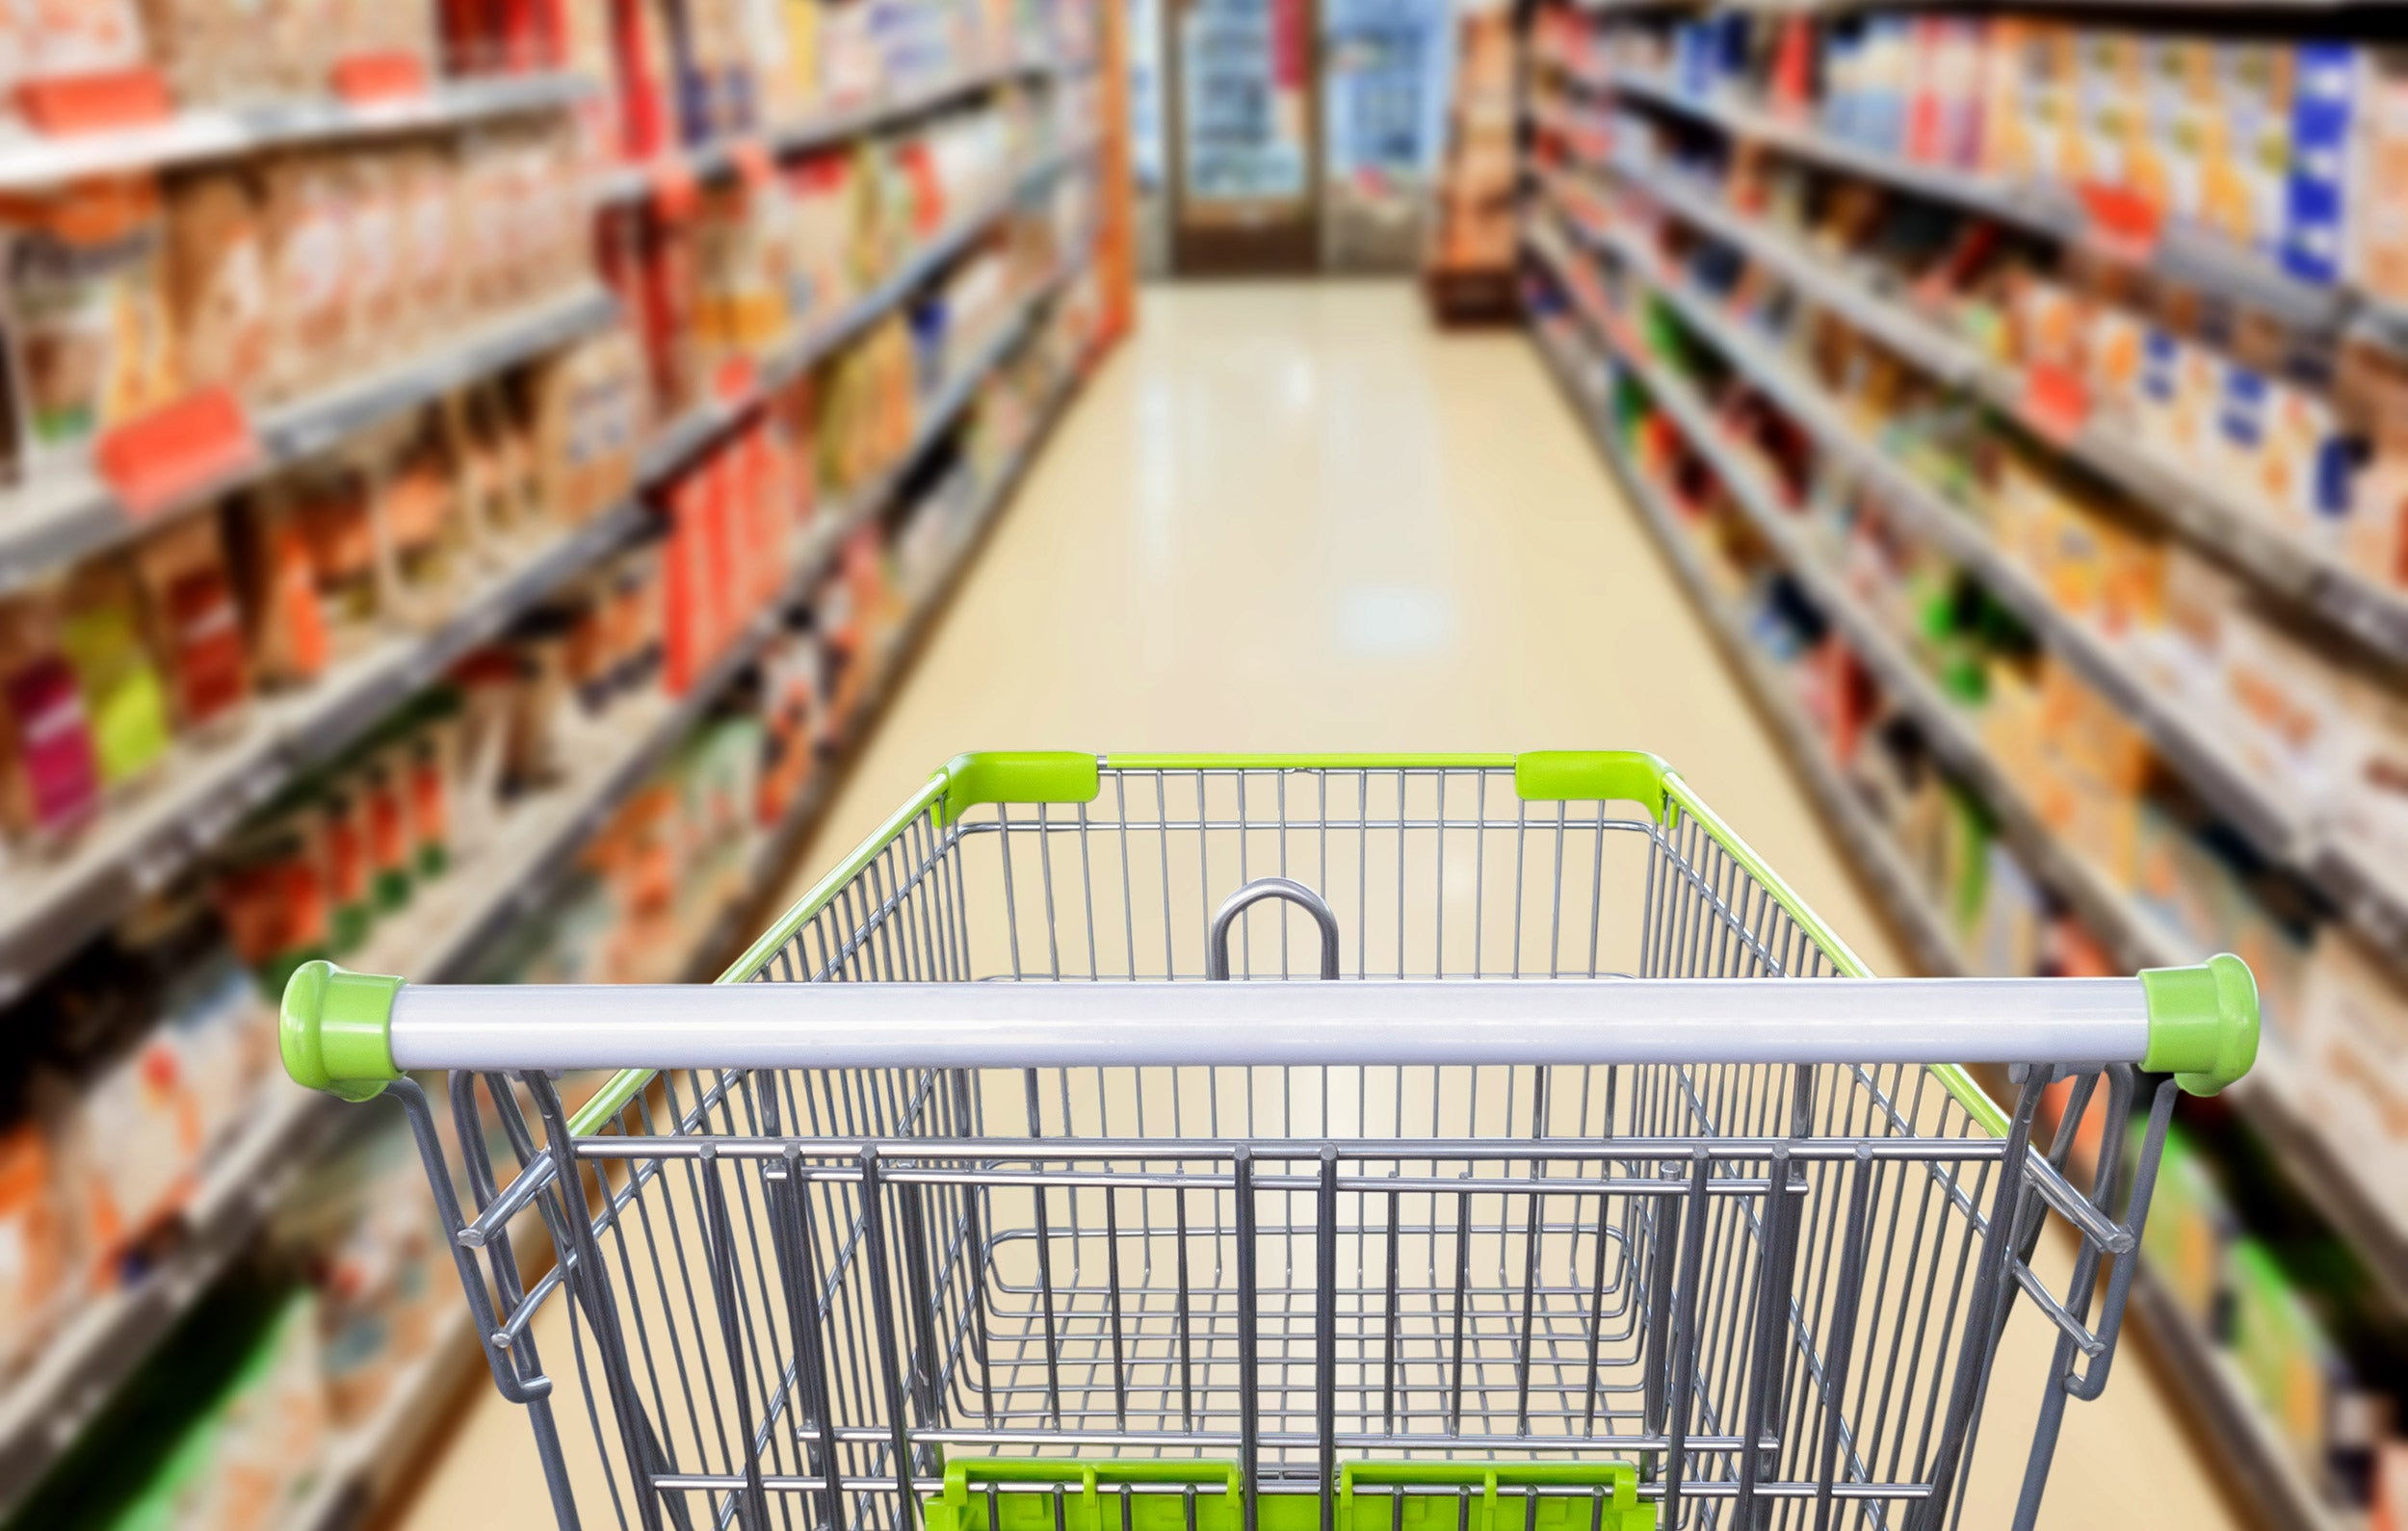 Supermarket aisle with empty shopping cart